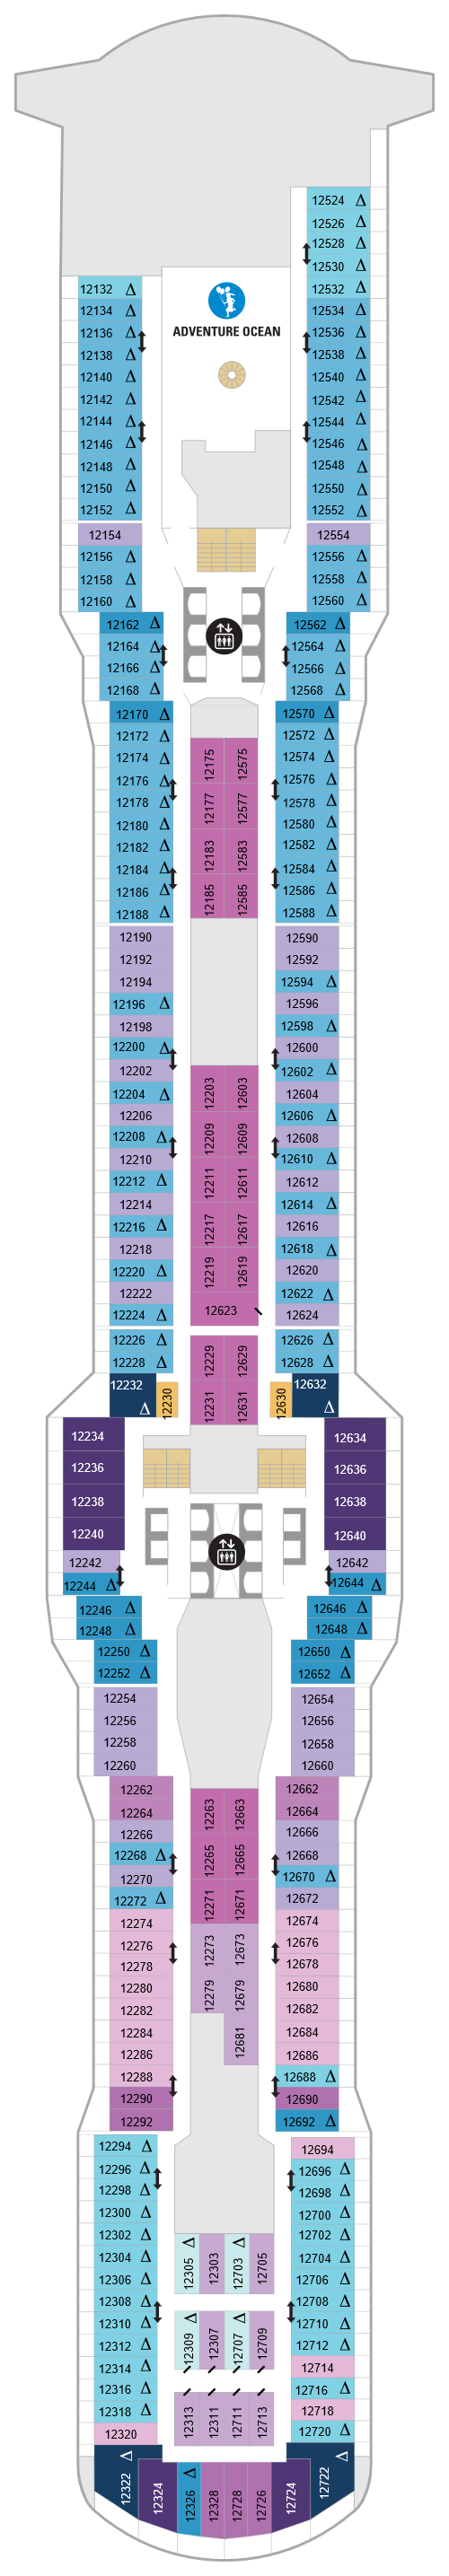 Spectrum Of The Seas Deck 12 layout